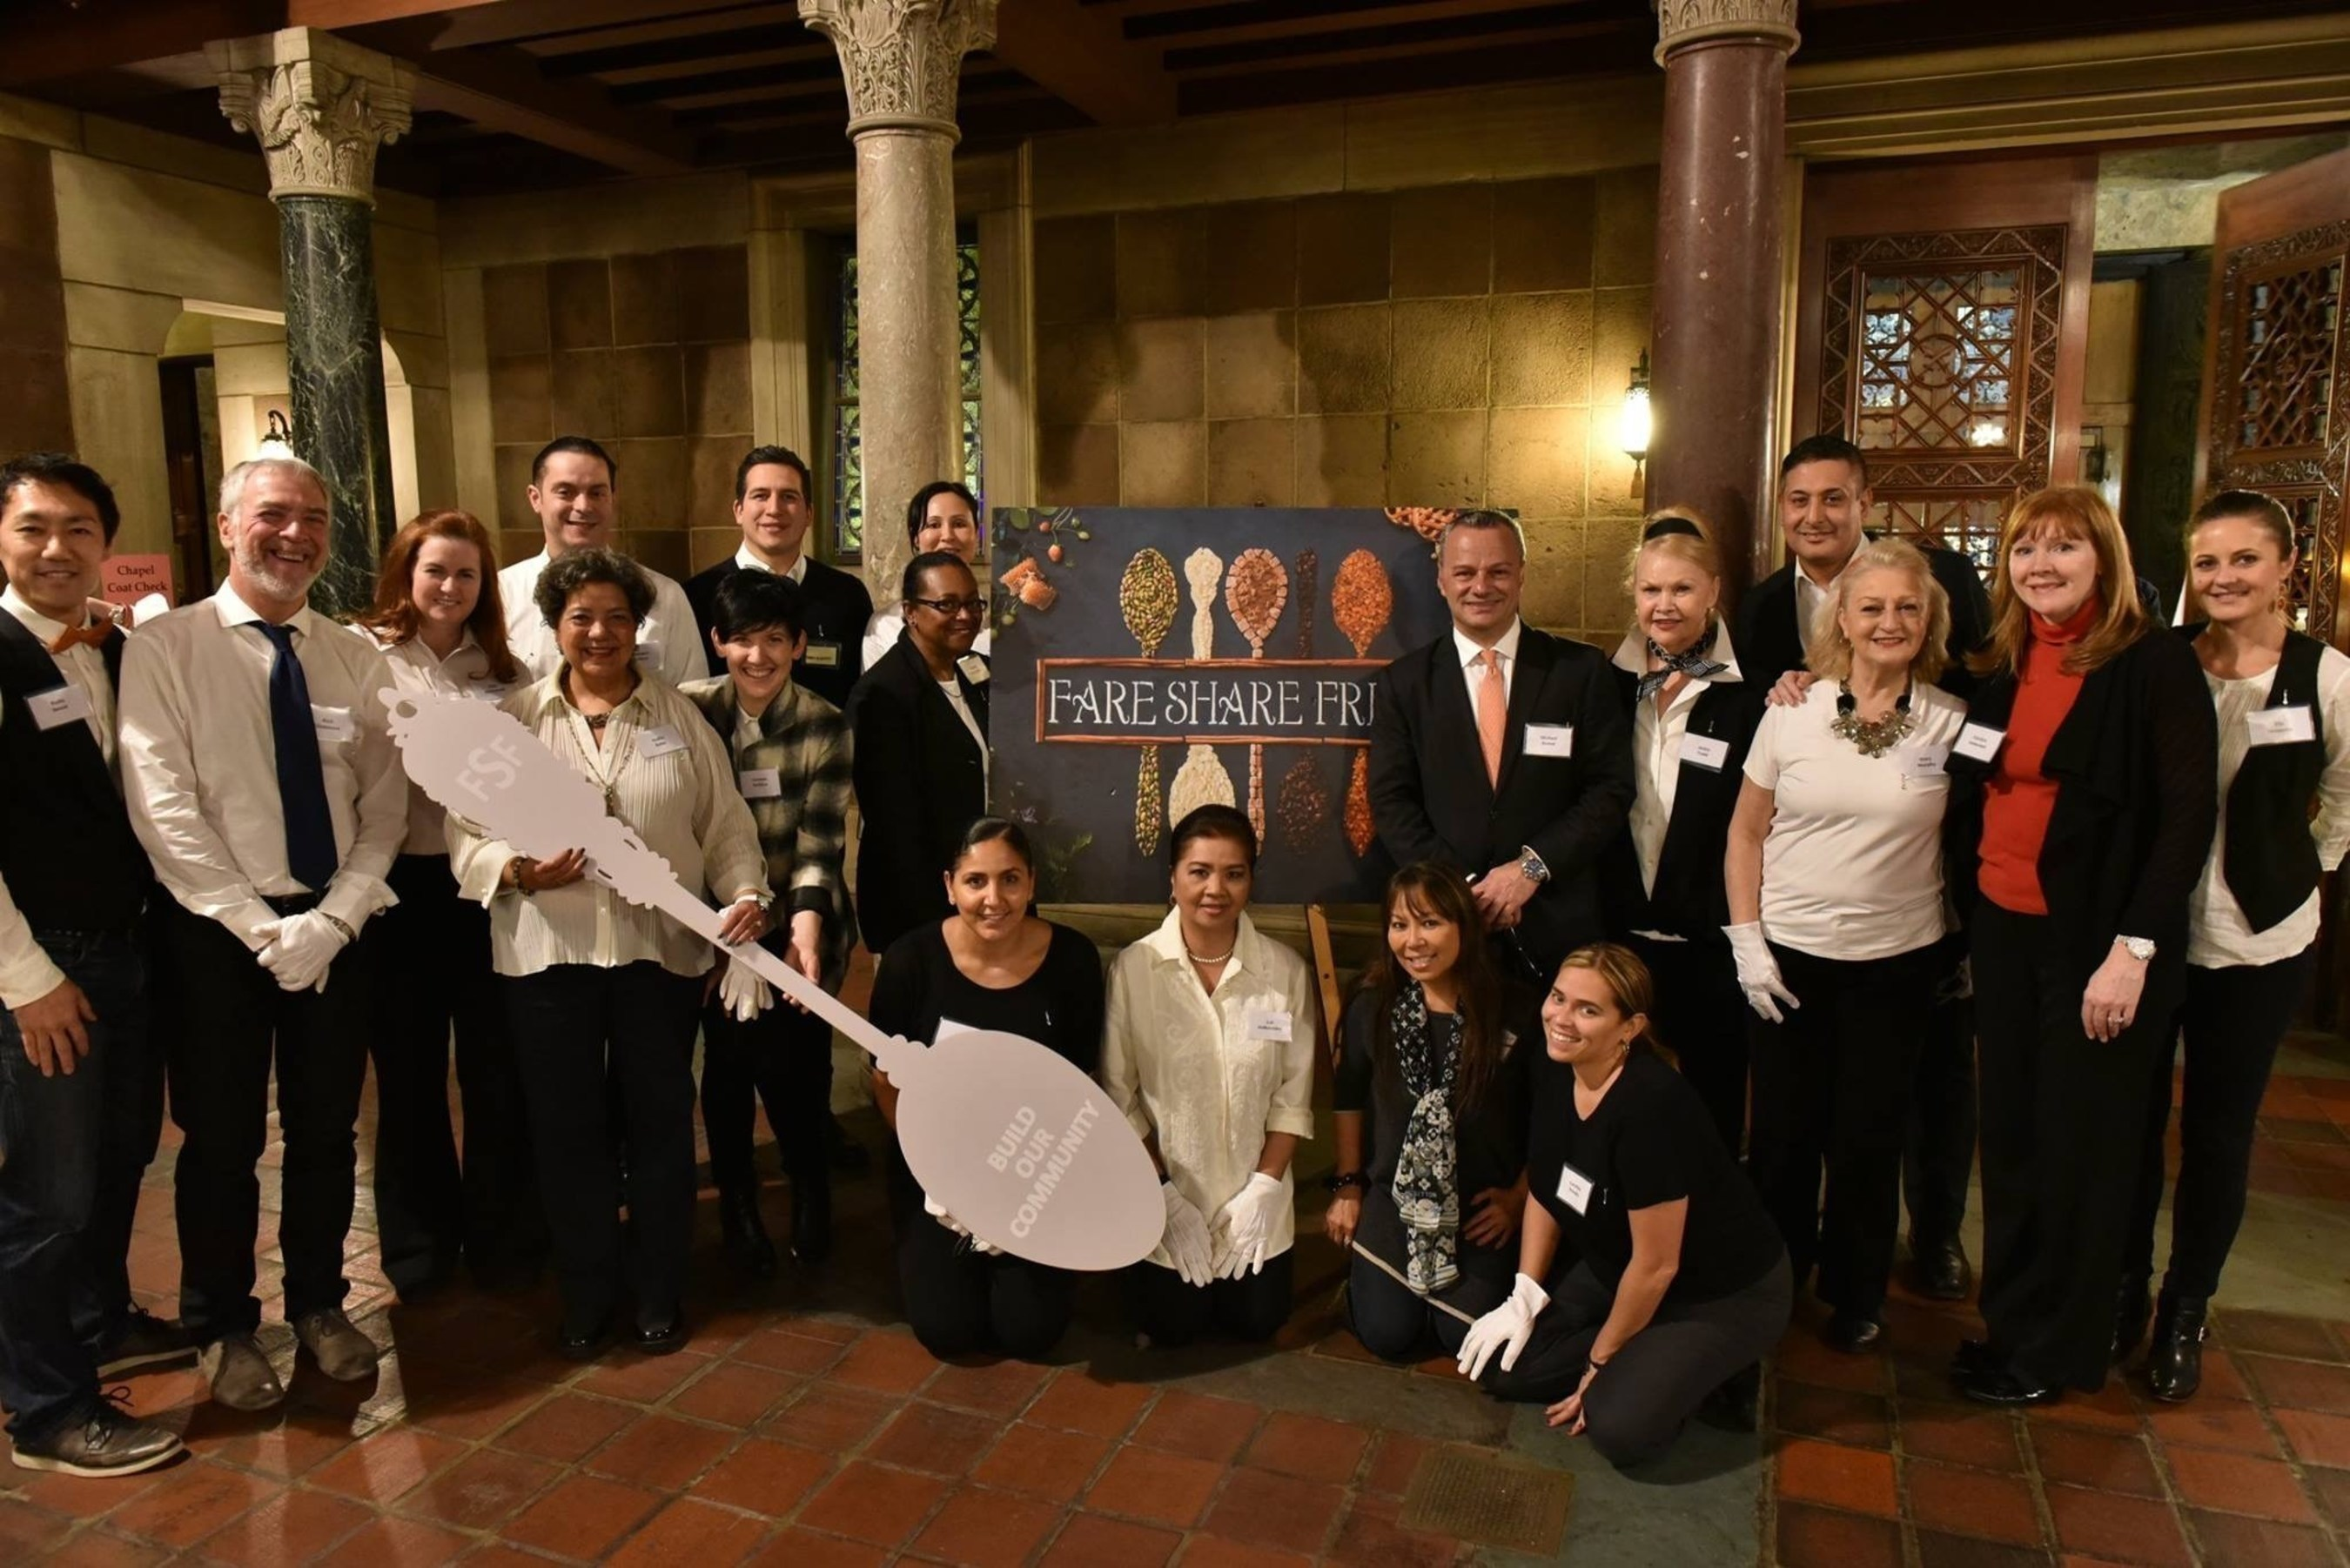 Applause Tickets donates to a charitable fund established by the New York City Association of Hotel Concierges and participates in community service activities like Fare Share Friday serving Thanksgiving dinner to those in need.